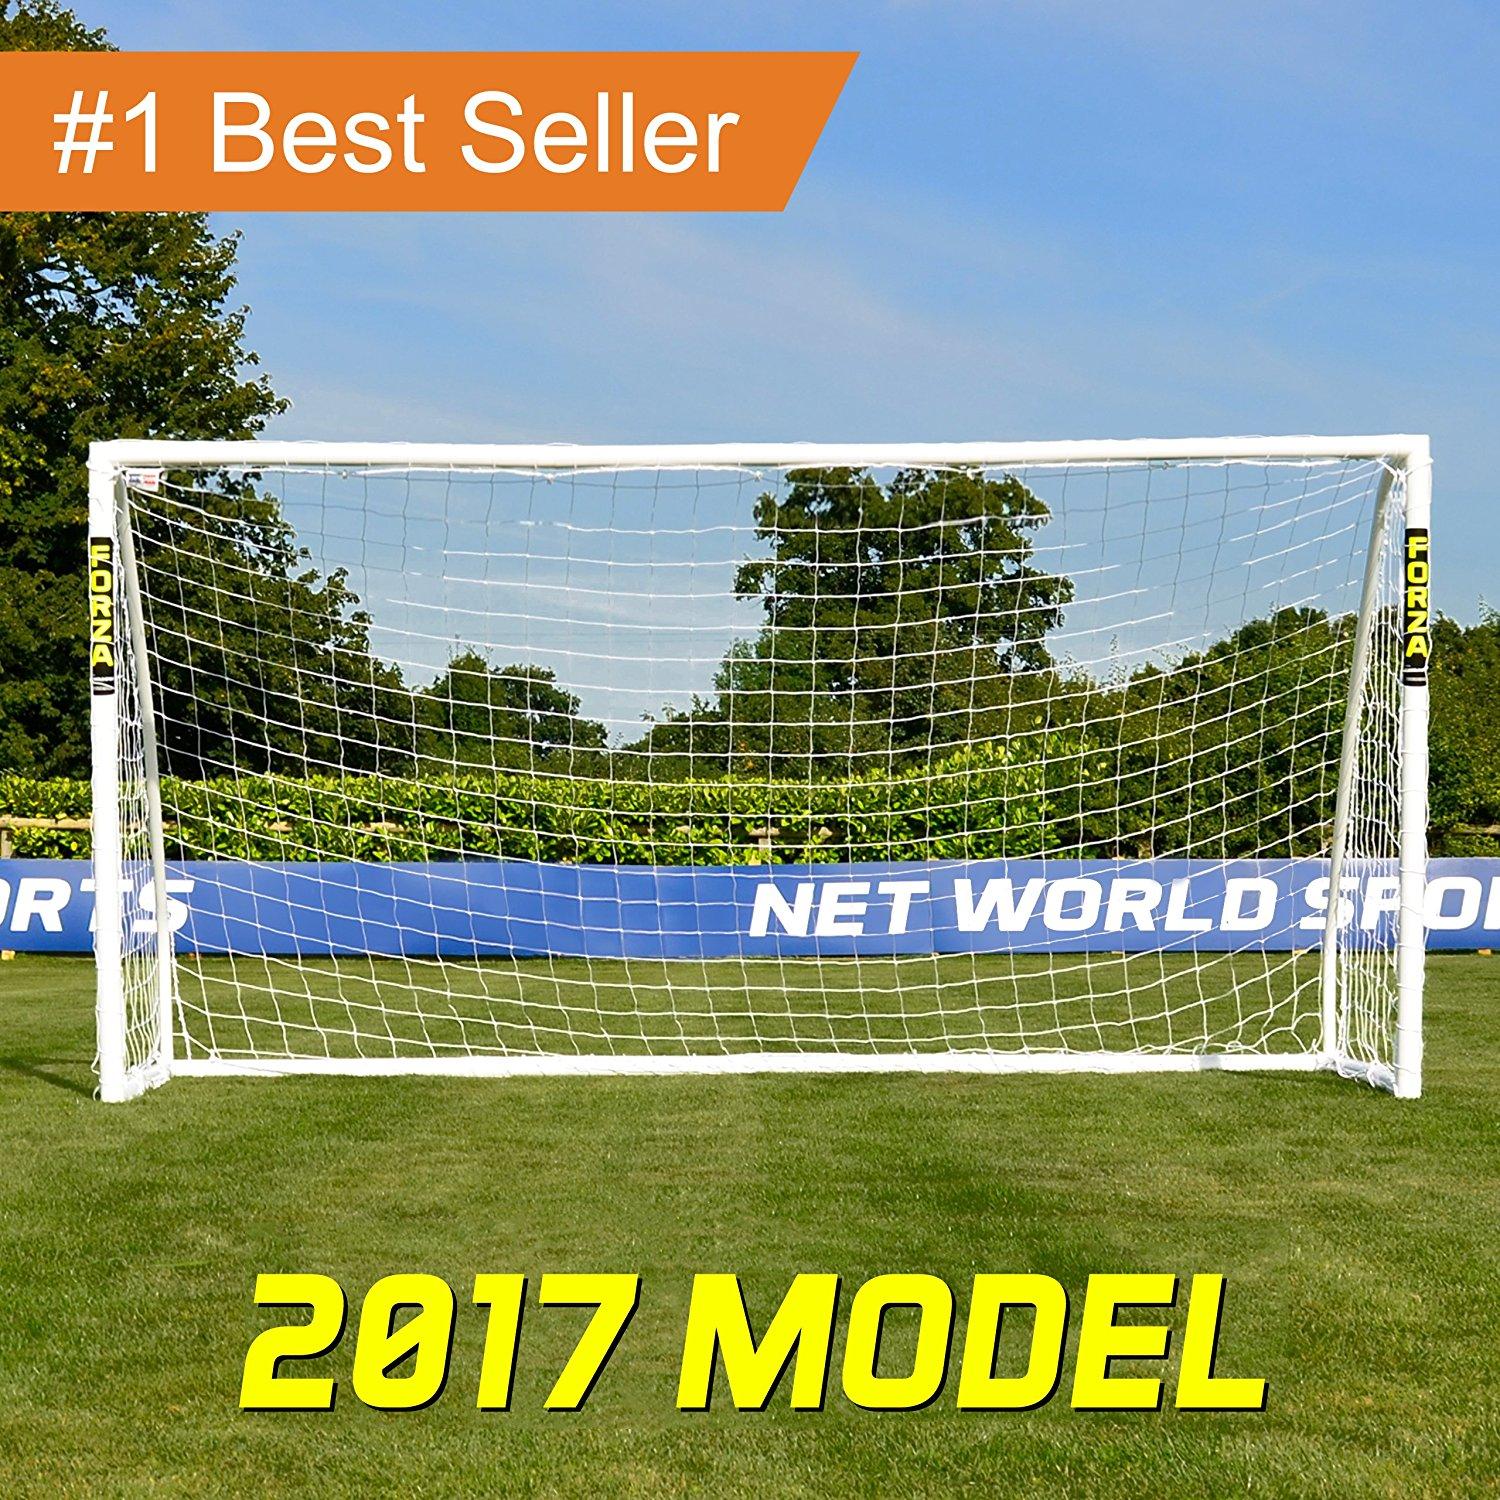 FORZA Soccer Goal - The Ultimate Home Soccer Goal! Leave These Soccer Goals Up In All Weather Conditions. FORZA Soccer Goals Can Take 1000s Of Shots!